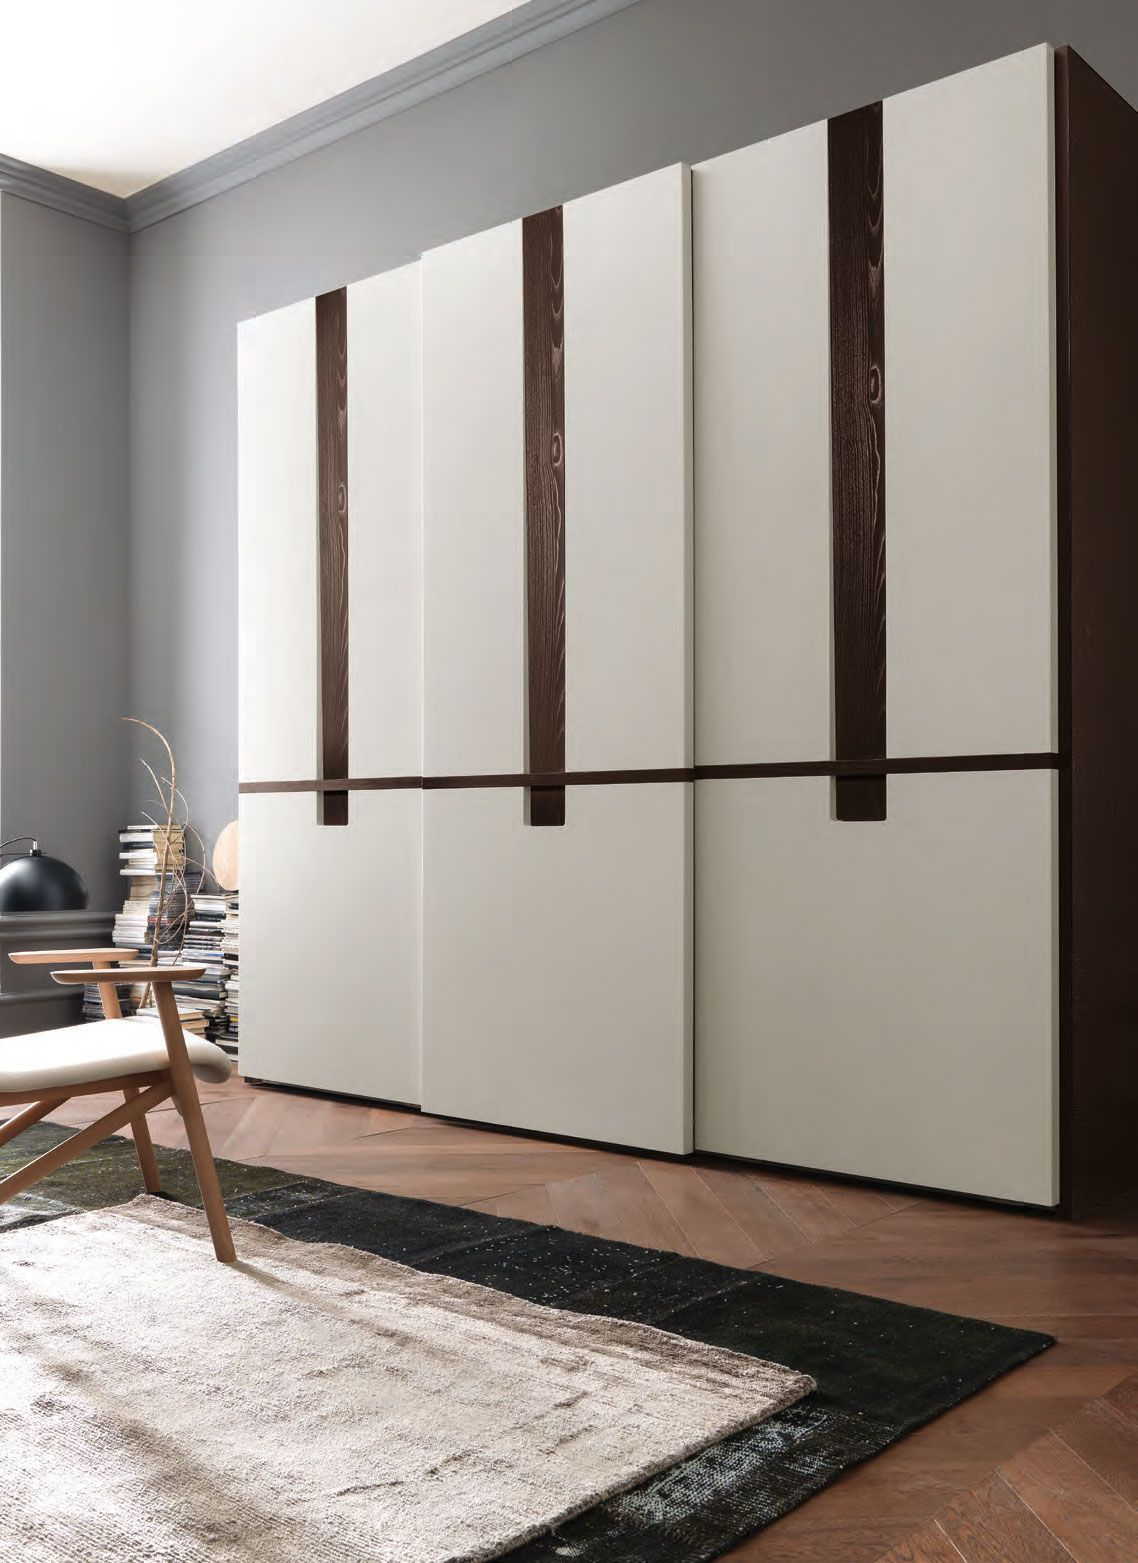 35 Modern Wardrobe Furniture Designs. 35 Modern Wardrobe Furniture Designs   Wardrobe furniture  Modern